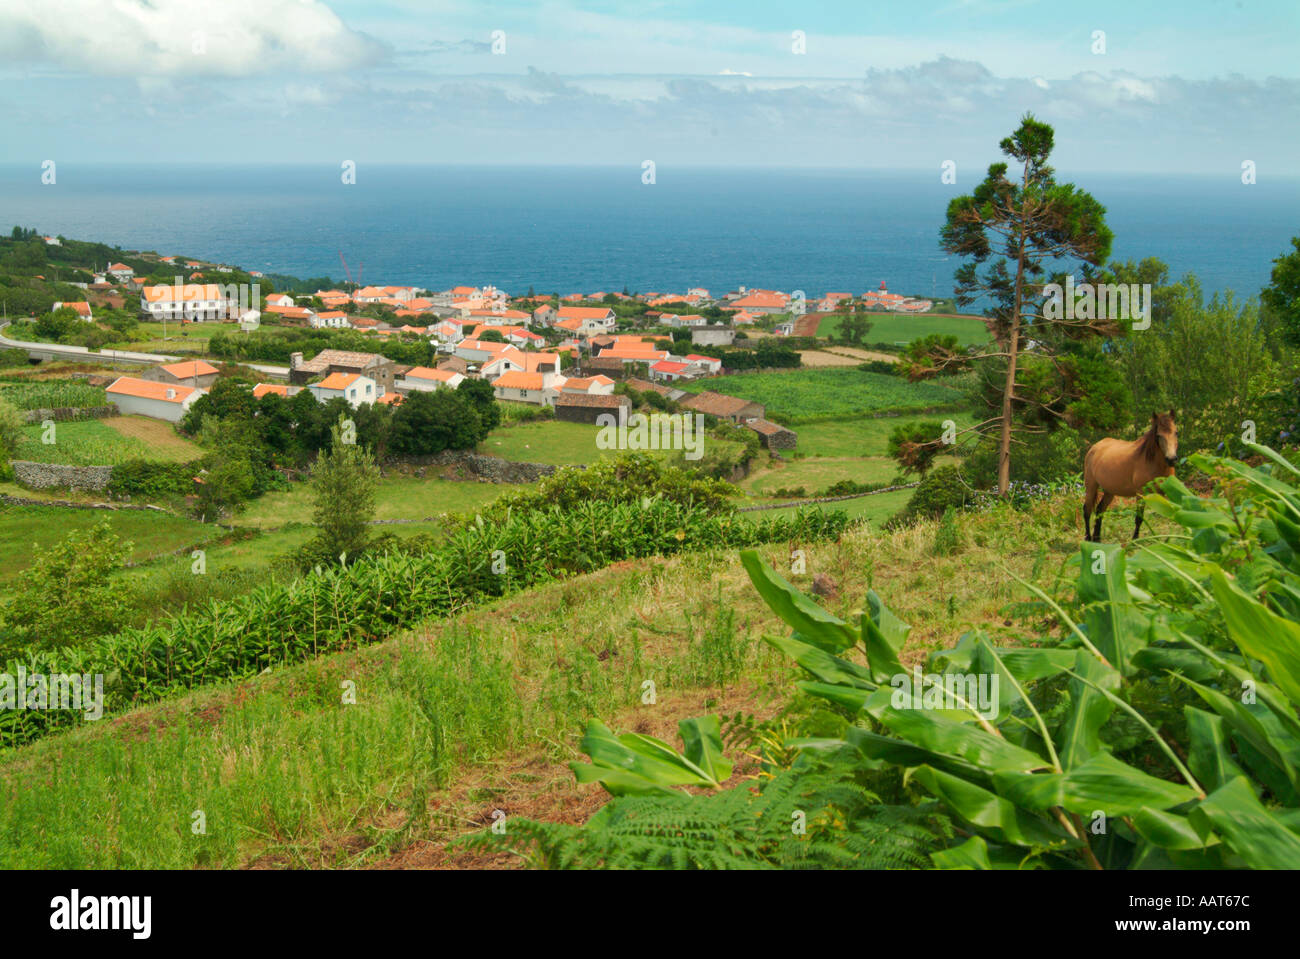 The port town of Lages on the island of Flores in the Azores. Flores translates to flowers and is called the Island of Flowers. - Stock Image